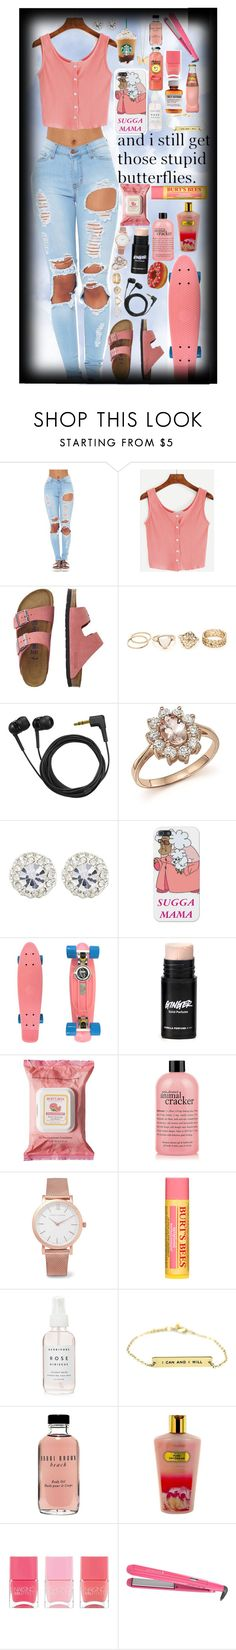 """""""And I still get those stupid butterflies.🌺"""" by the-after-party ❤ liked on Polyvore featuring TravelSmith, Sennheiser, Bloomingdale's, River Island, Retrò, Burt's Bees, philosophy, Larsson & Jennings, Bobbi Brown Cosmetics and Victoria's Secret"""